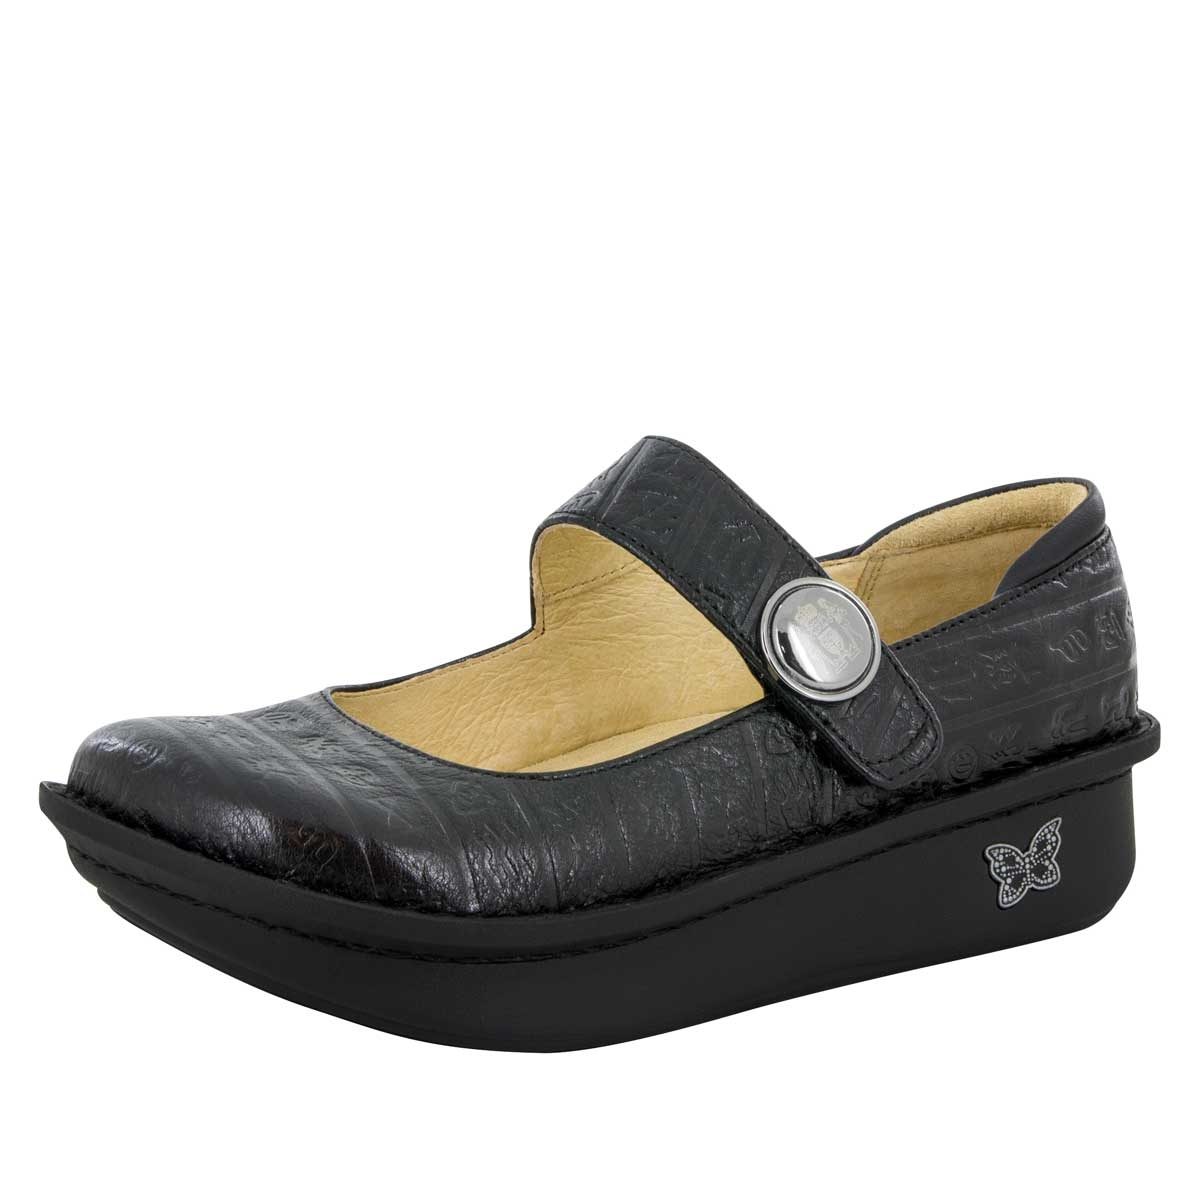 Alegria Paloma Hieroglyph mary jane shoes for women. View Larger Photo  Email ...